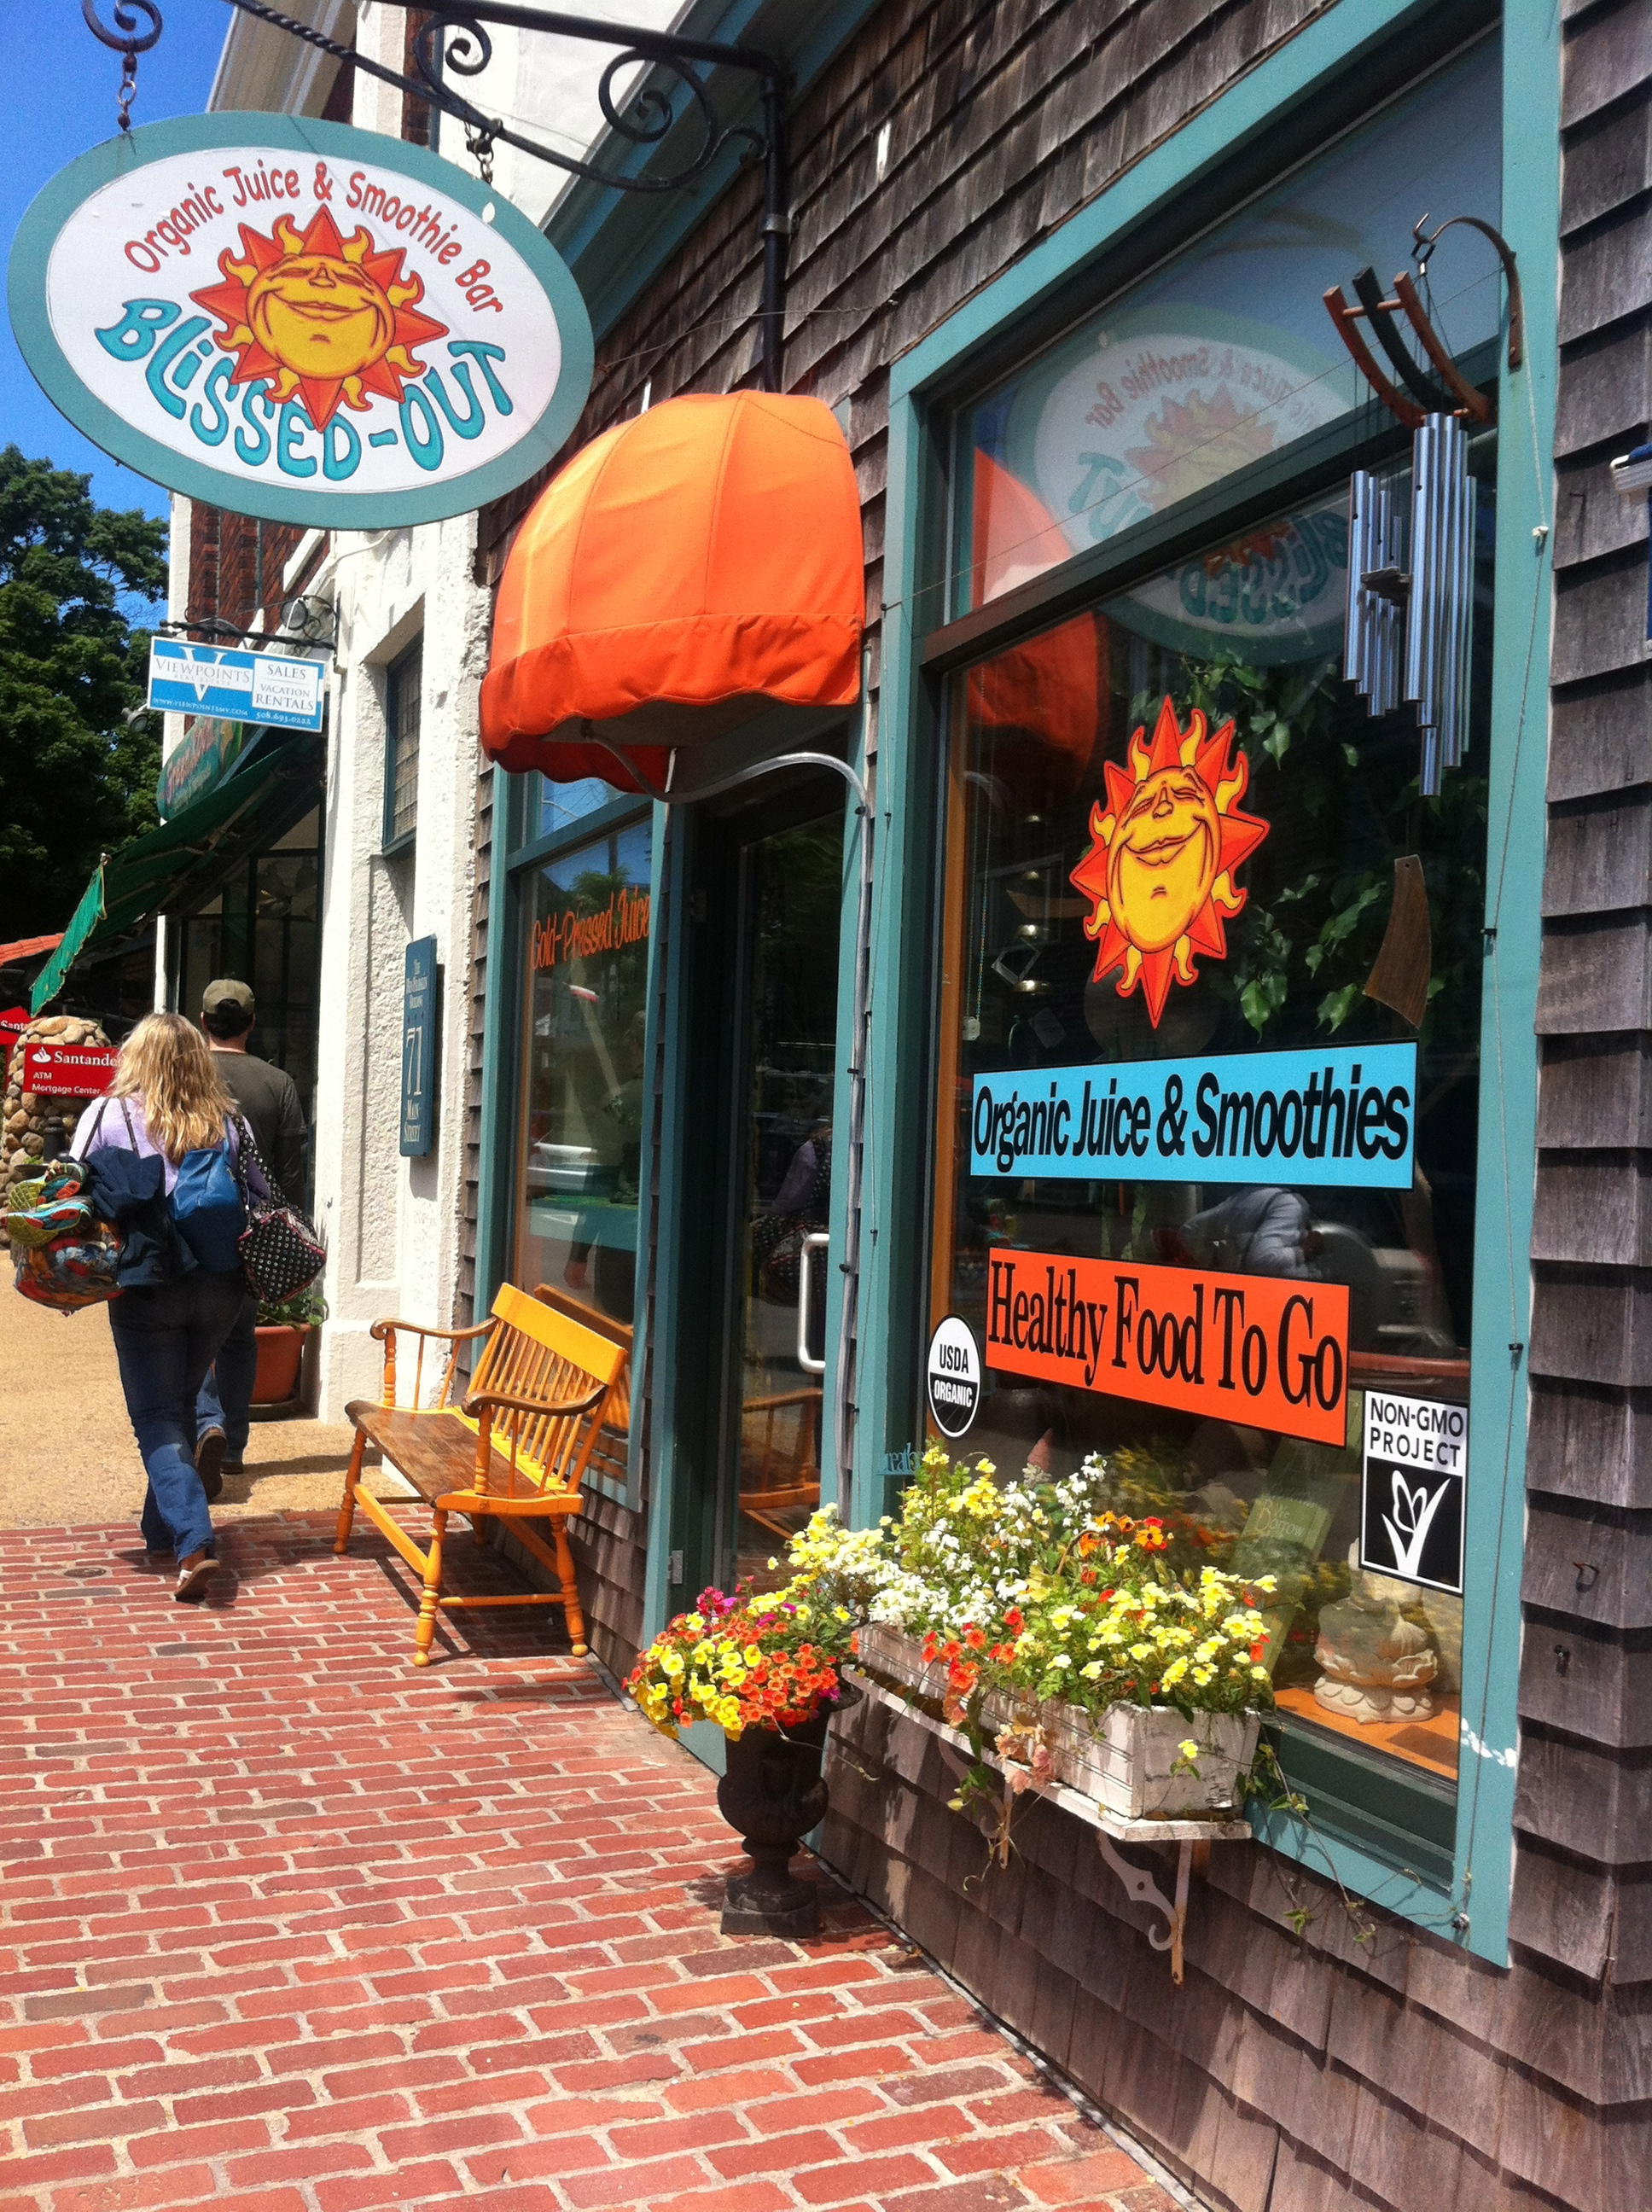 Blissed Out, Vineyard Haven, MV